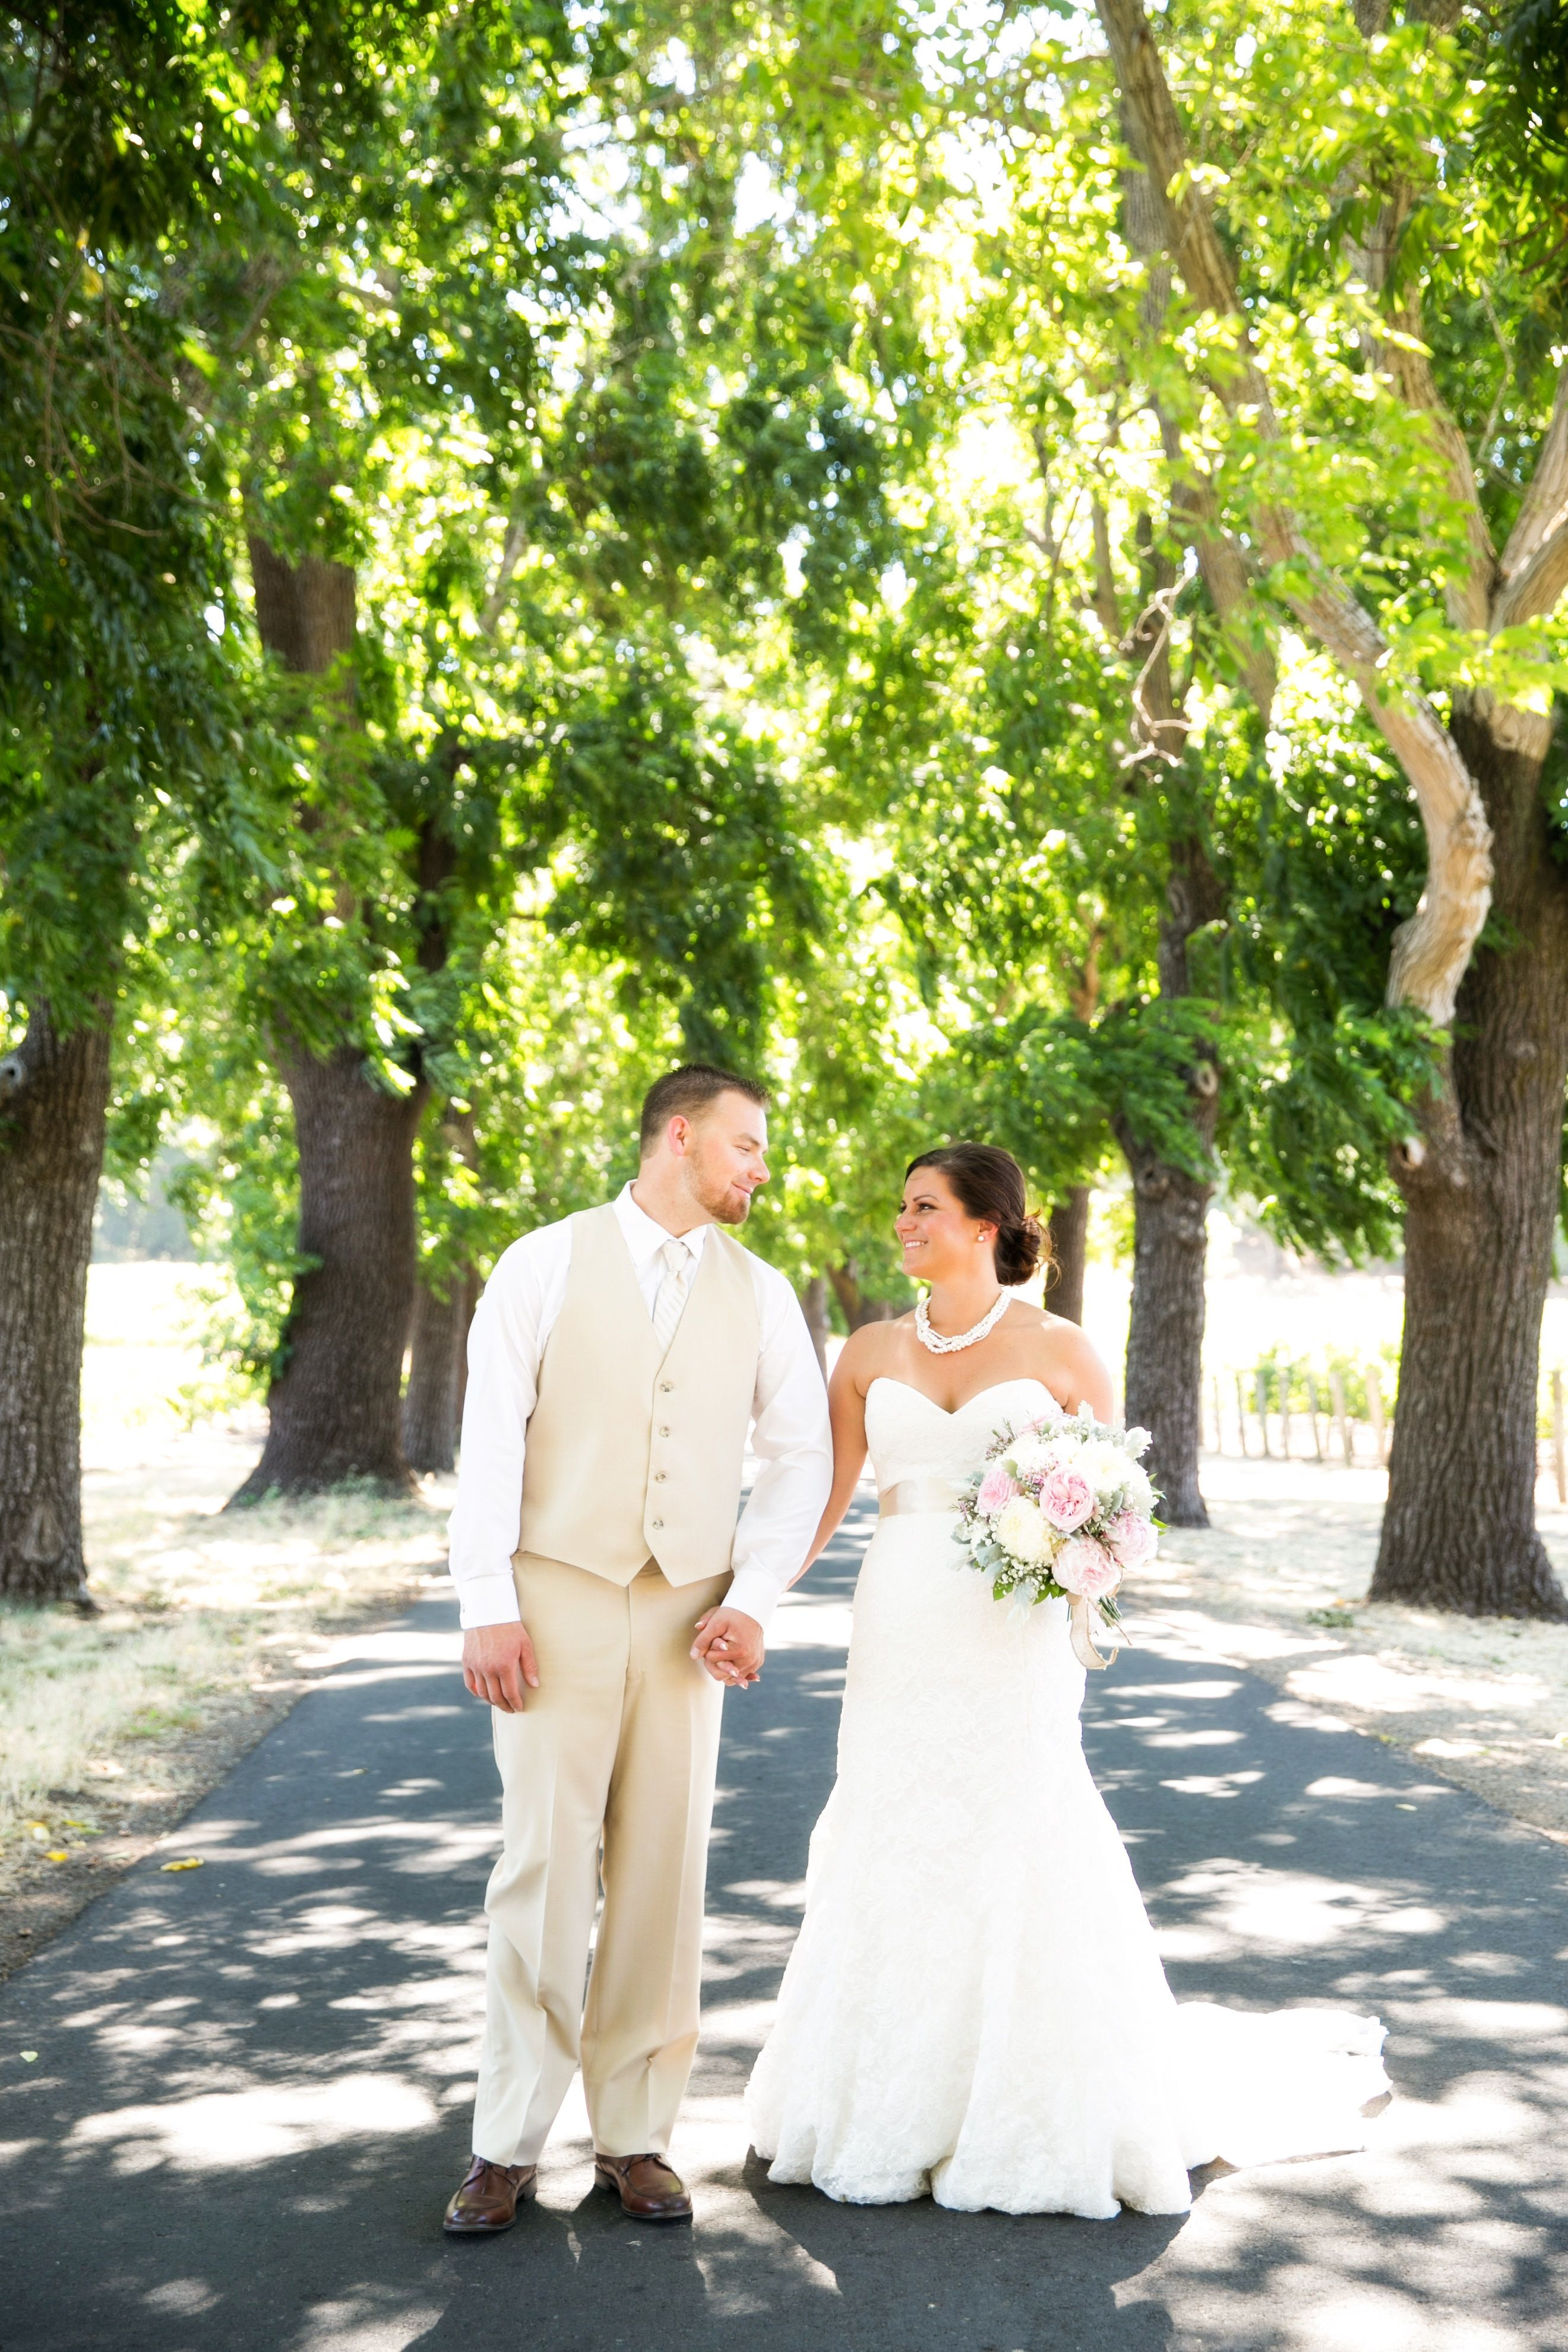 A rustic homemade wedding at Robinson Family Vineyard in Napa, CA. Photography by Adeline & Grace Intimates. More: http://www.theknot.com/weddings/album/171922